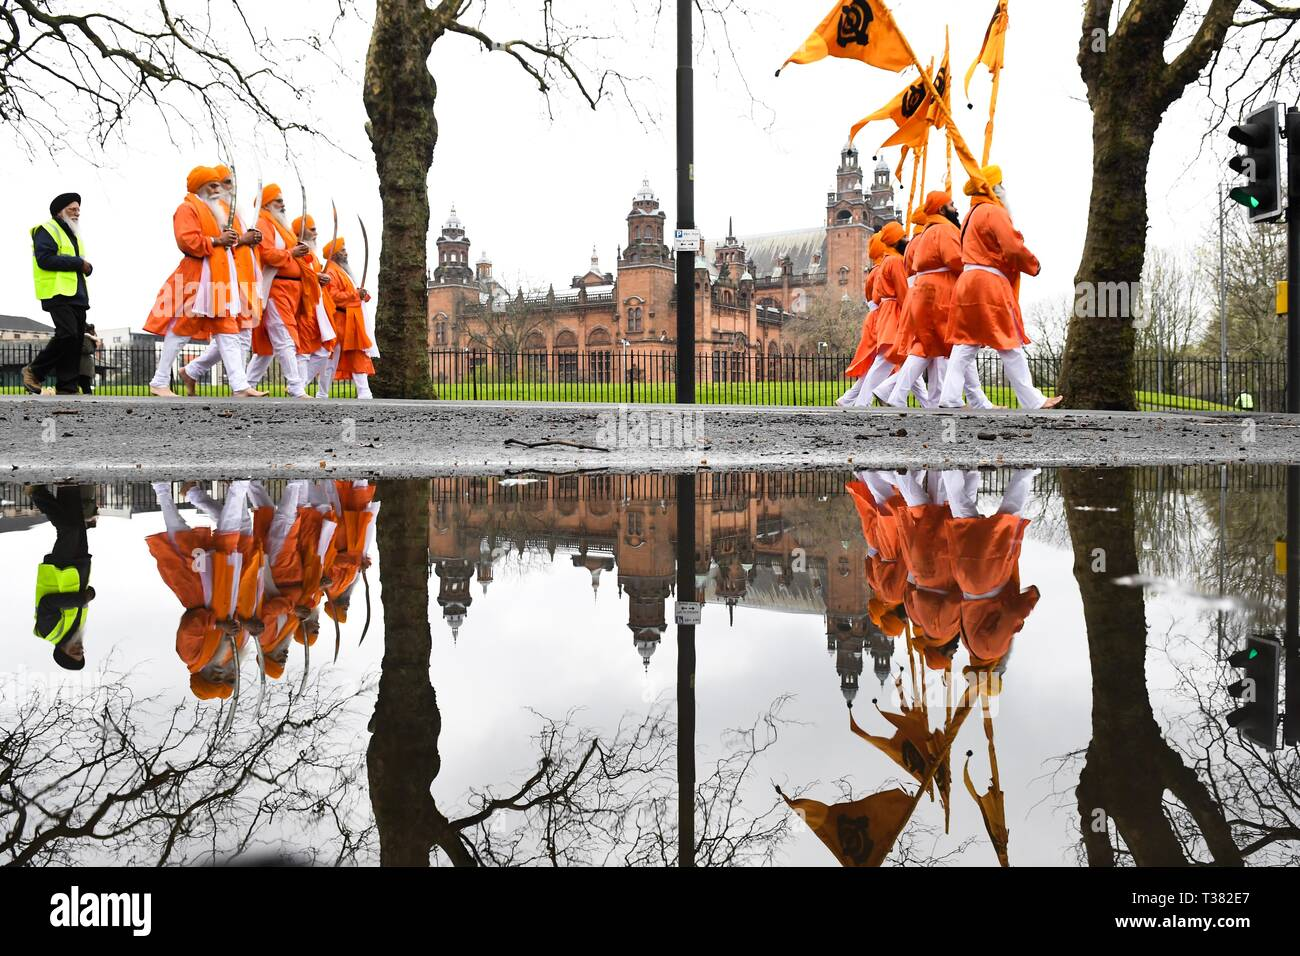 Glasgow, UK. 07th Apr, 2019. Sikhs in Glasgow celebrating the festival of Vaisakhi (or Baisakhi) with a colourful Nagar Kirtan parade processing around the city's four Gurdwaras or Sikh temples.   Here passing Kelvingrove Museum. Credit: Kay Roxby/Alamy Live News Stock Photo